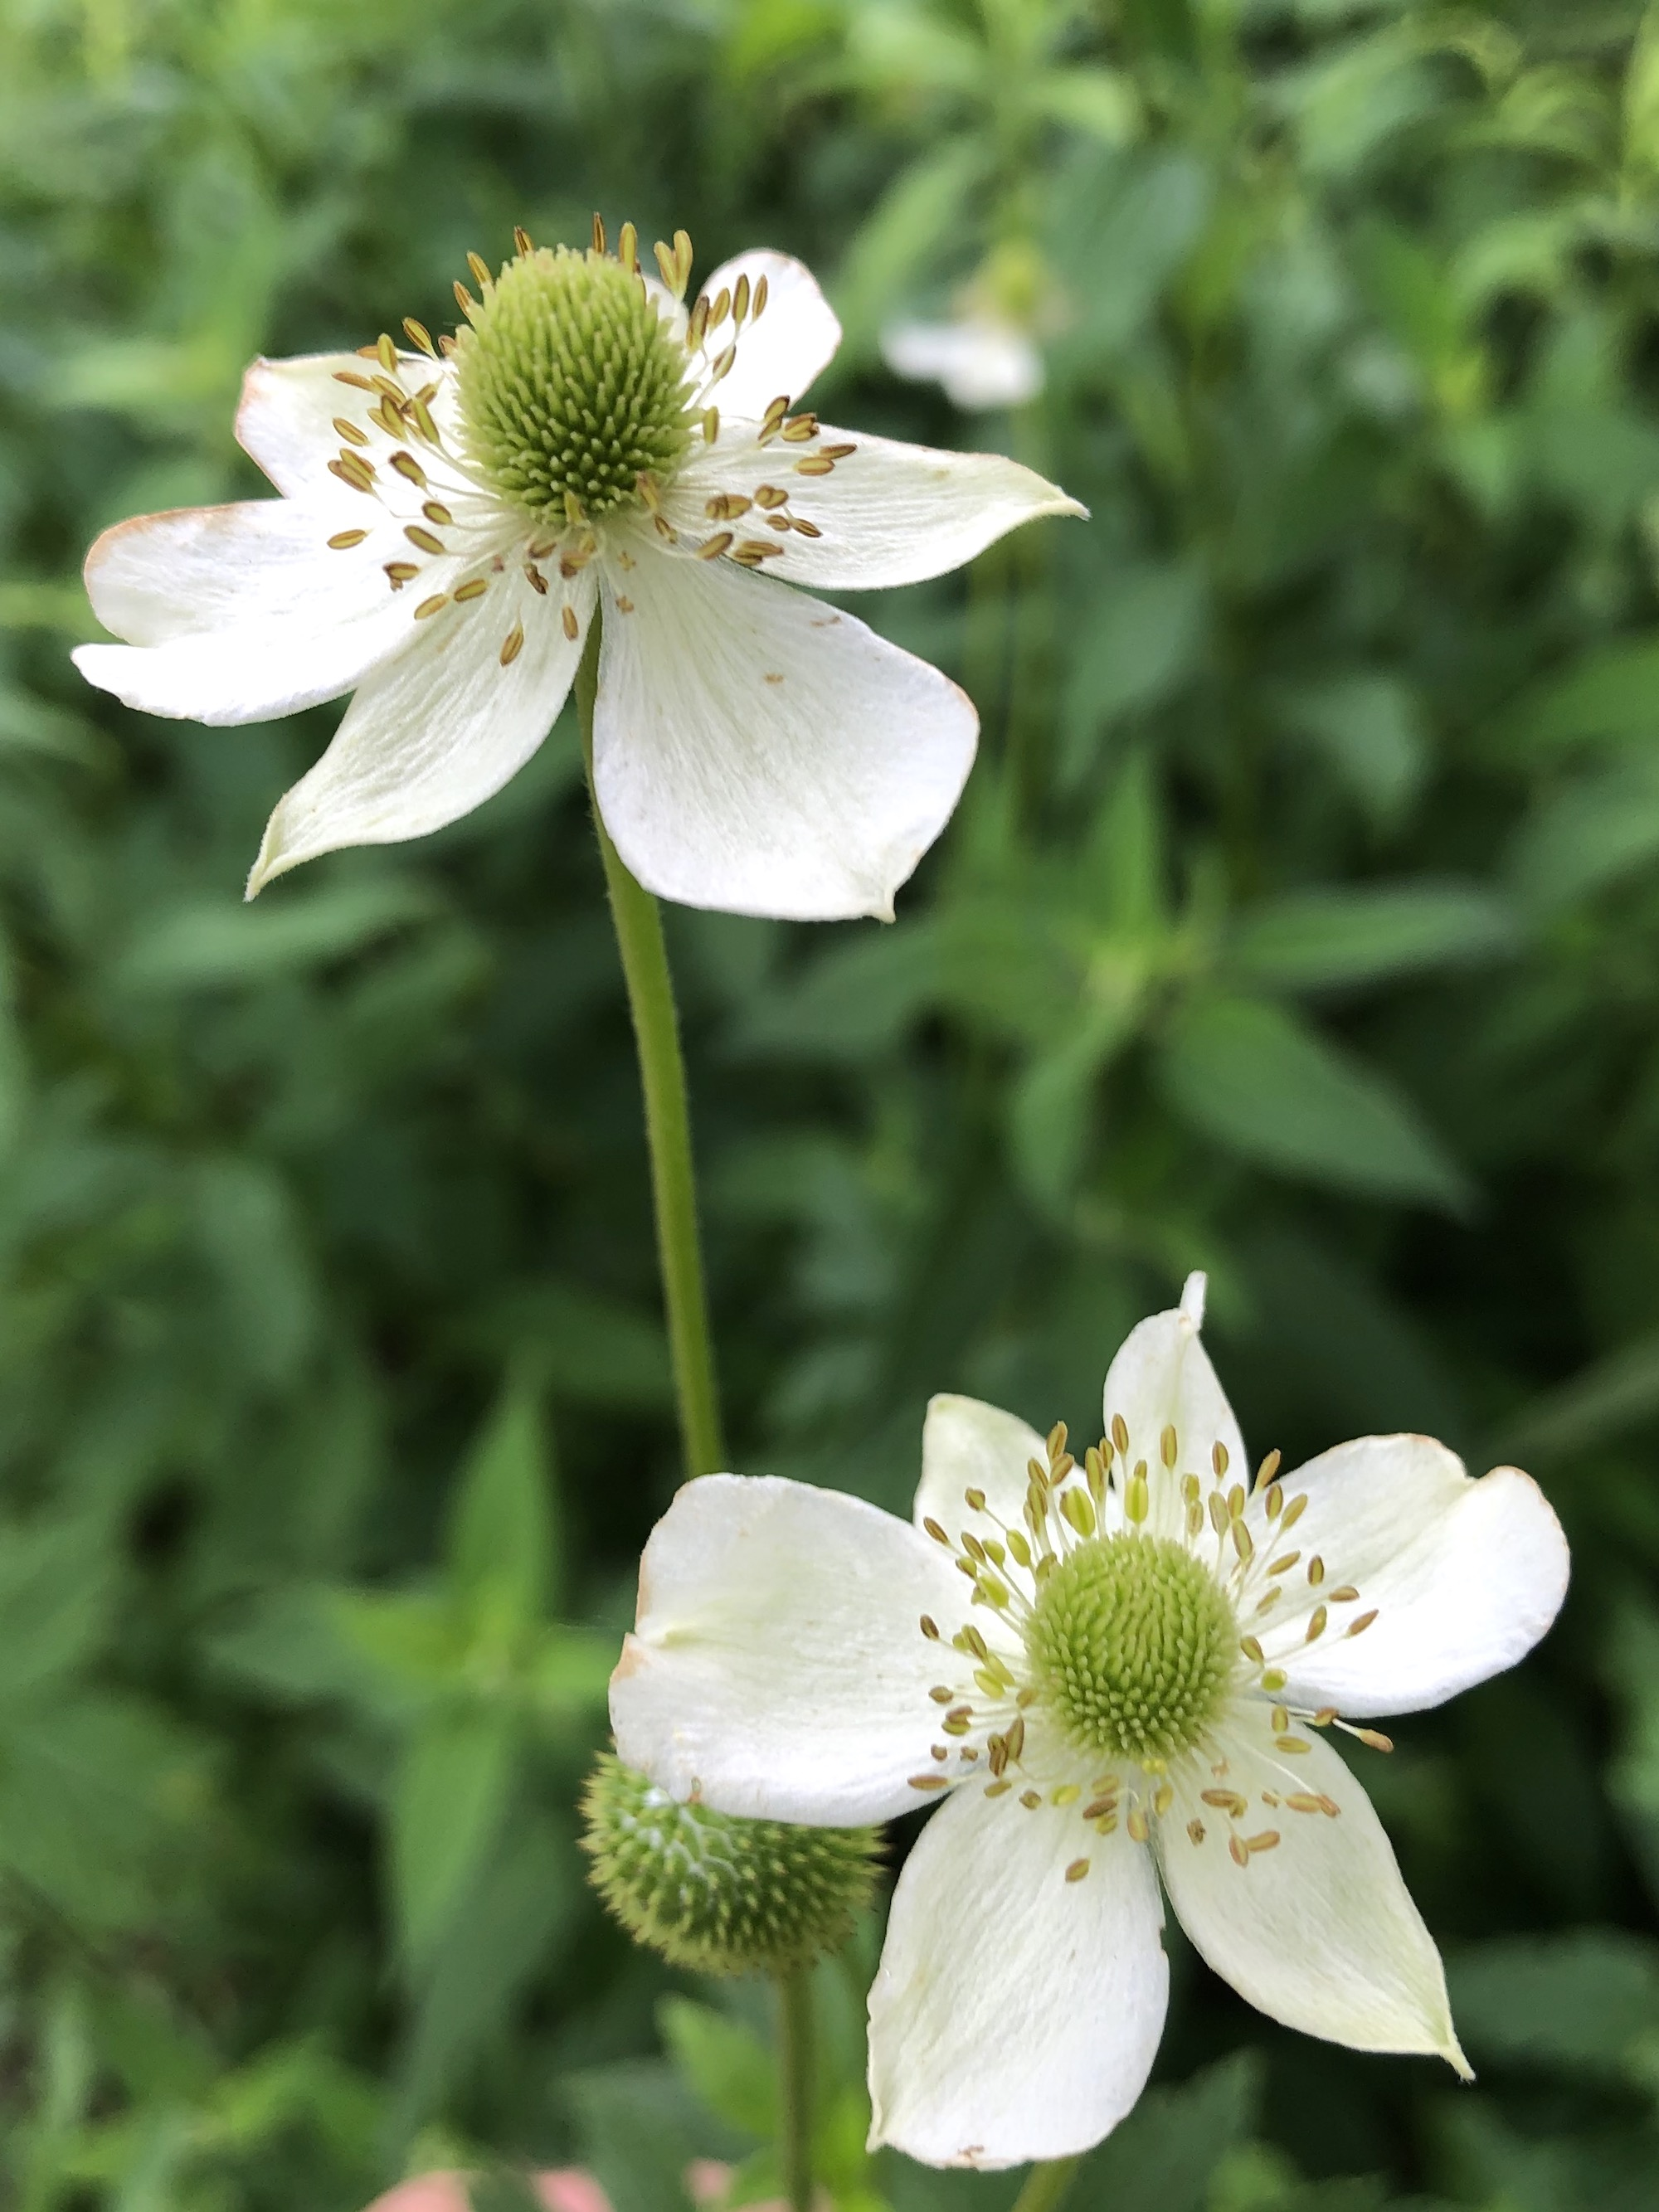 Thimbleweed in U.W. Arboretum's Native Gardens on June 30, 2020.